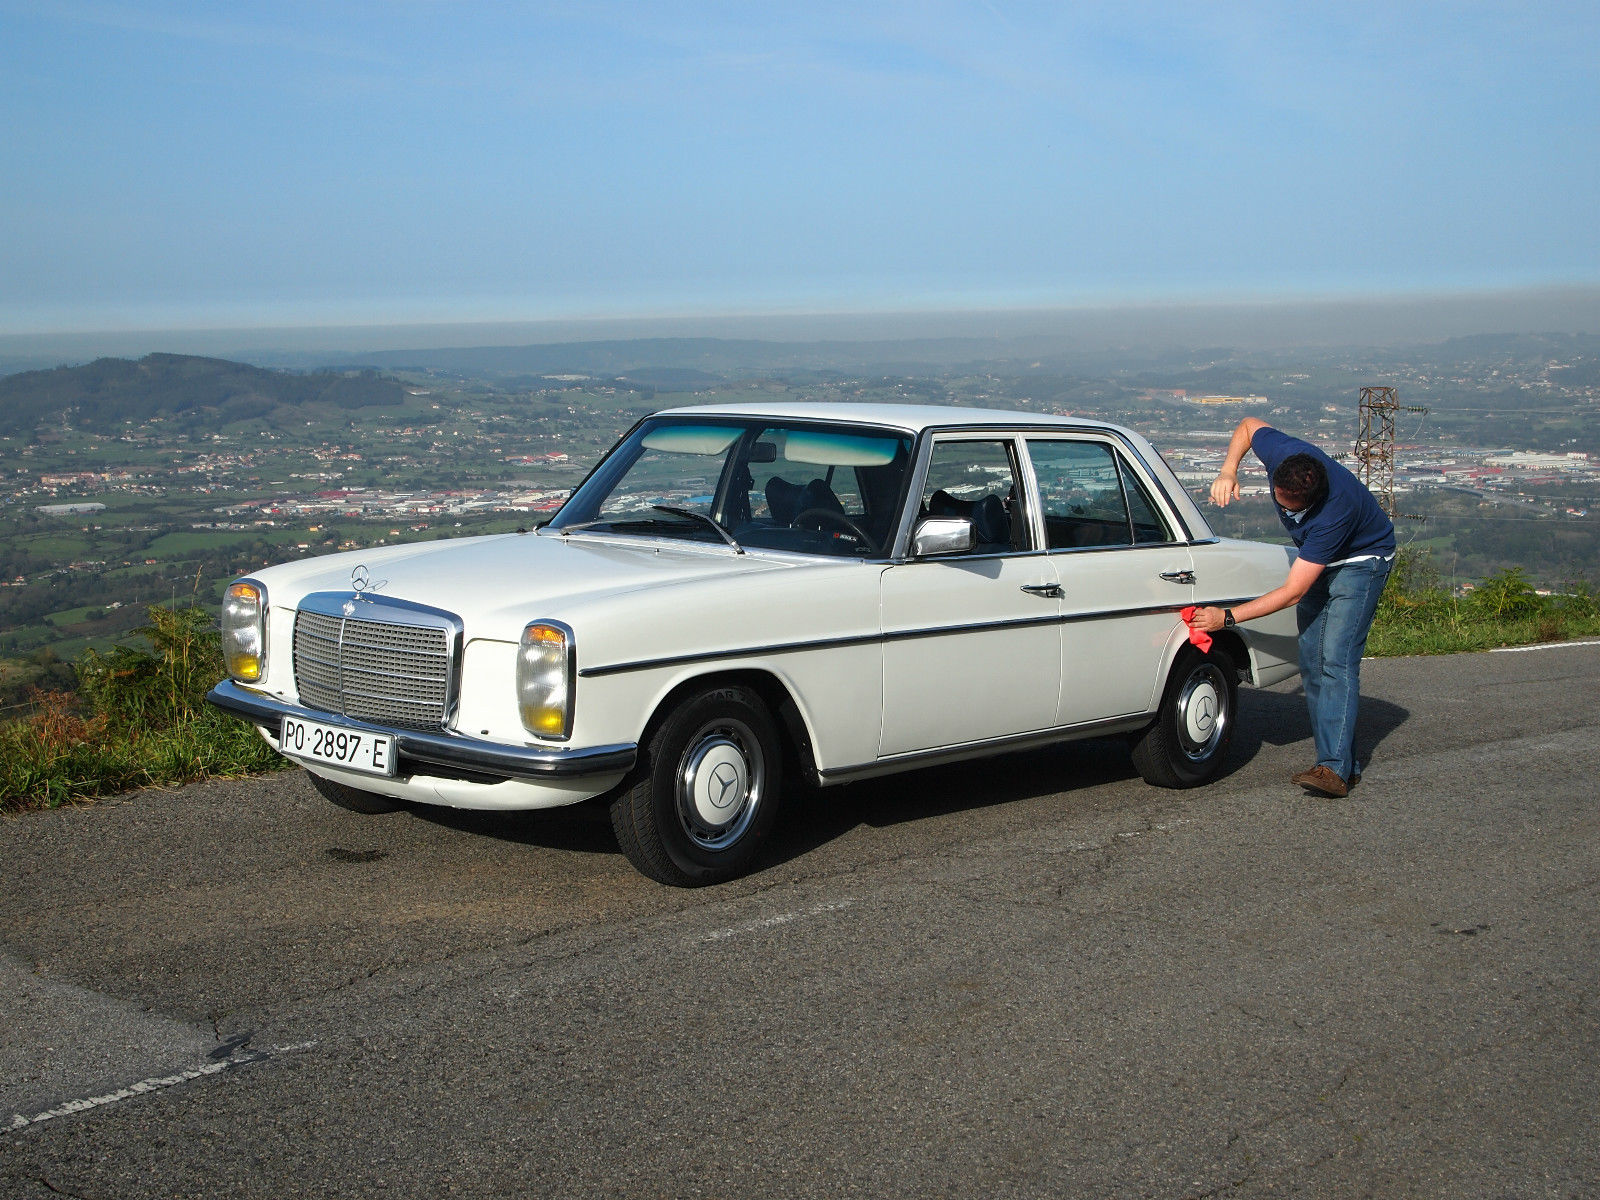 Mercedes benz w114 230 6 1975 for sale in oviedo spain for Mercedes benz official site usa